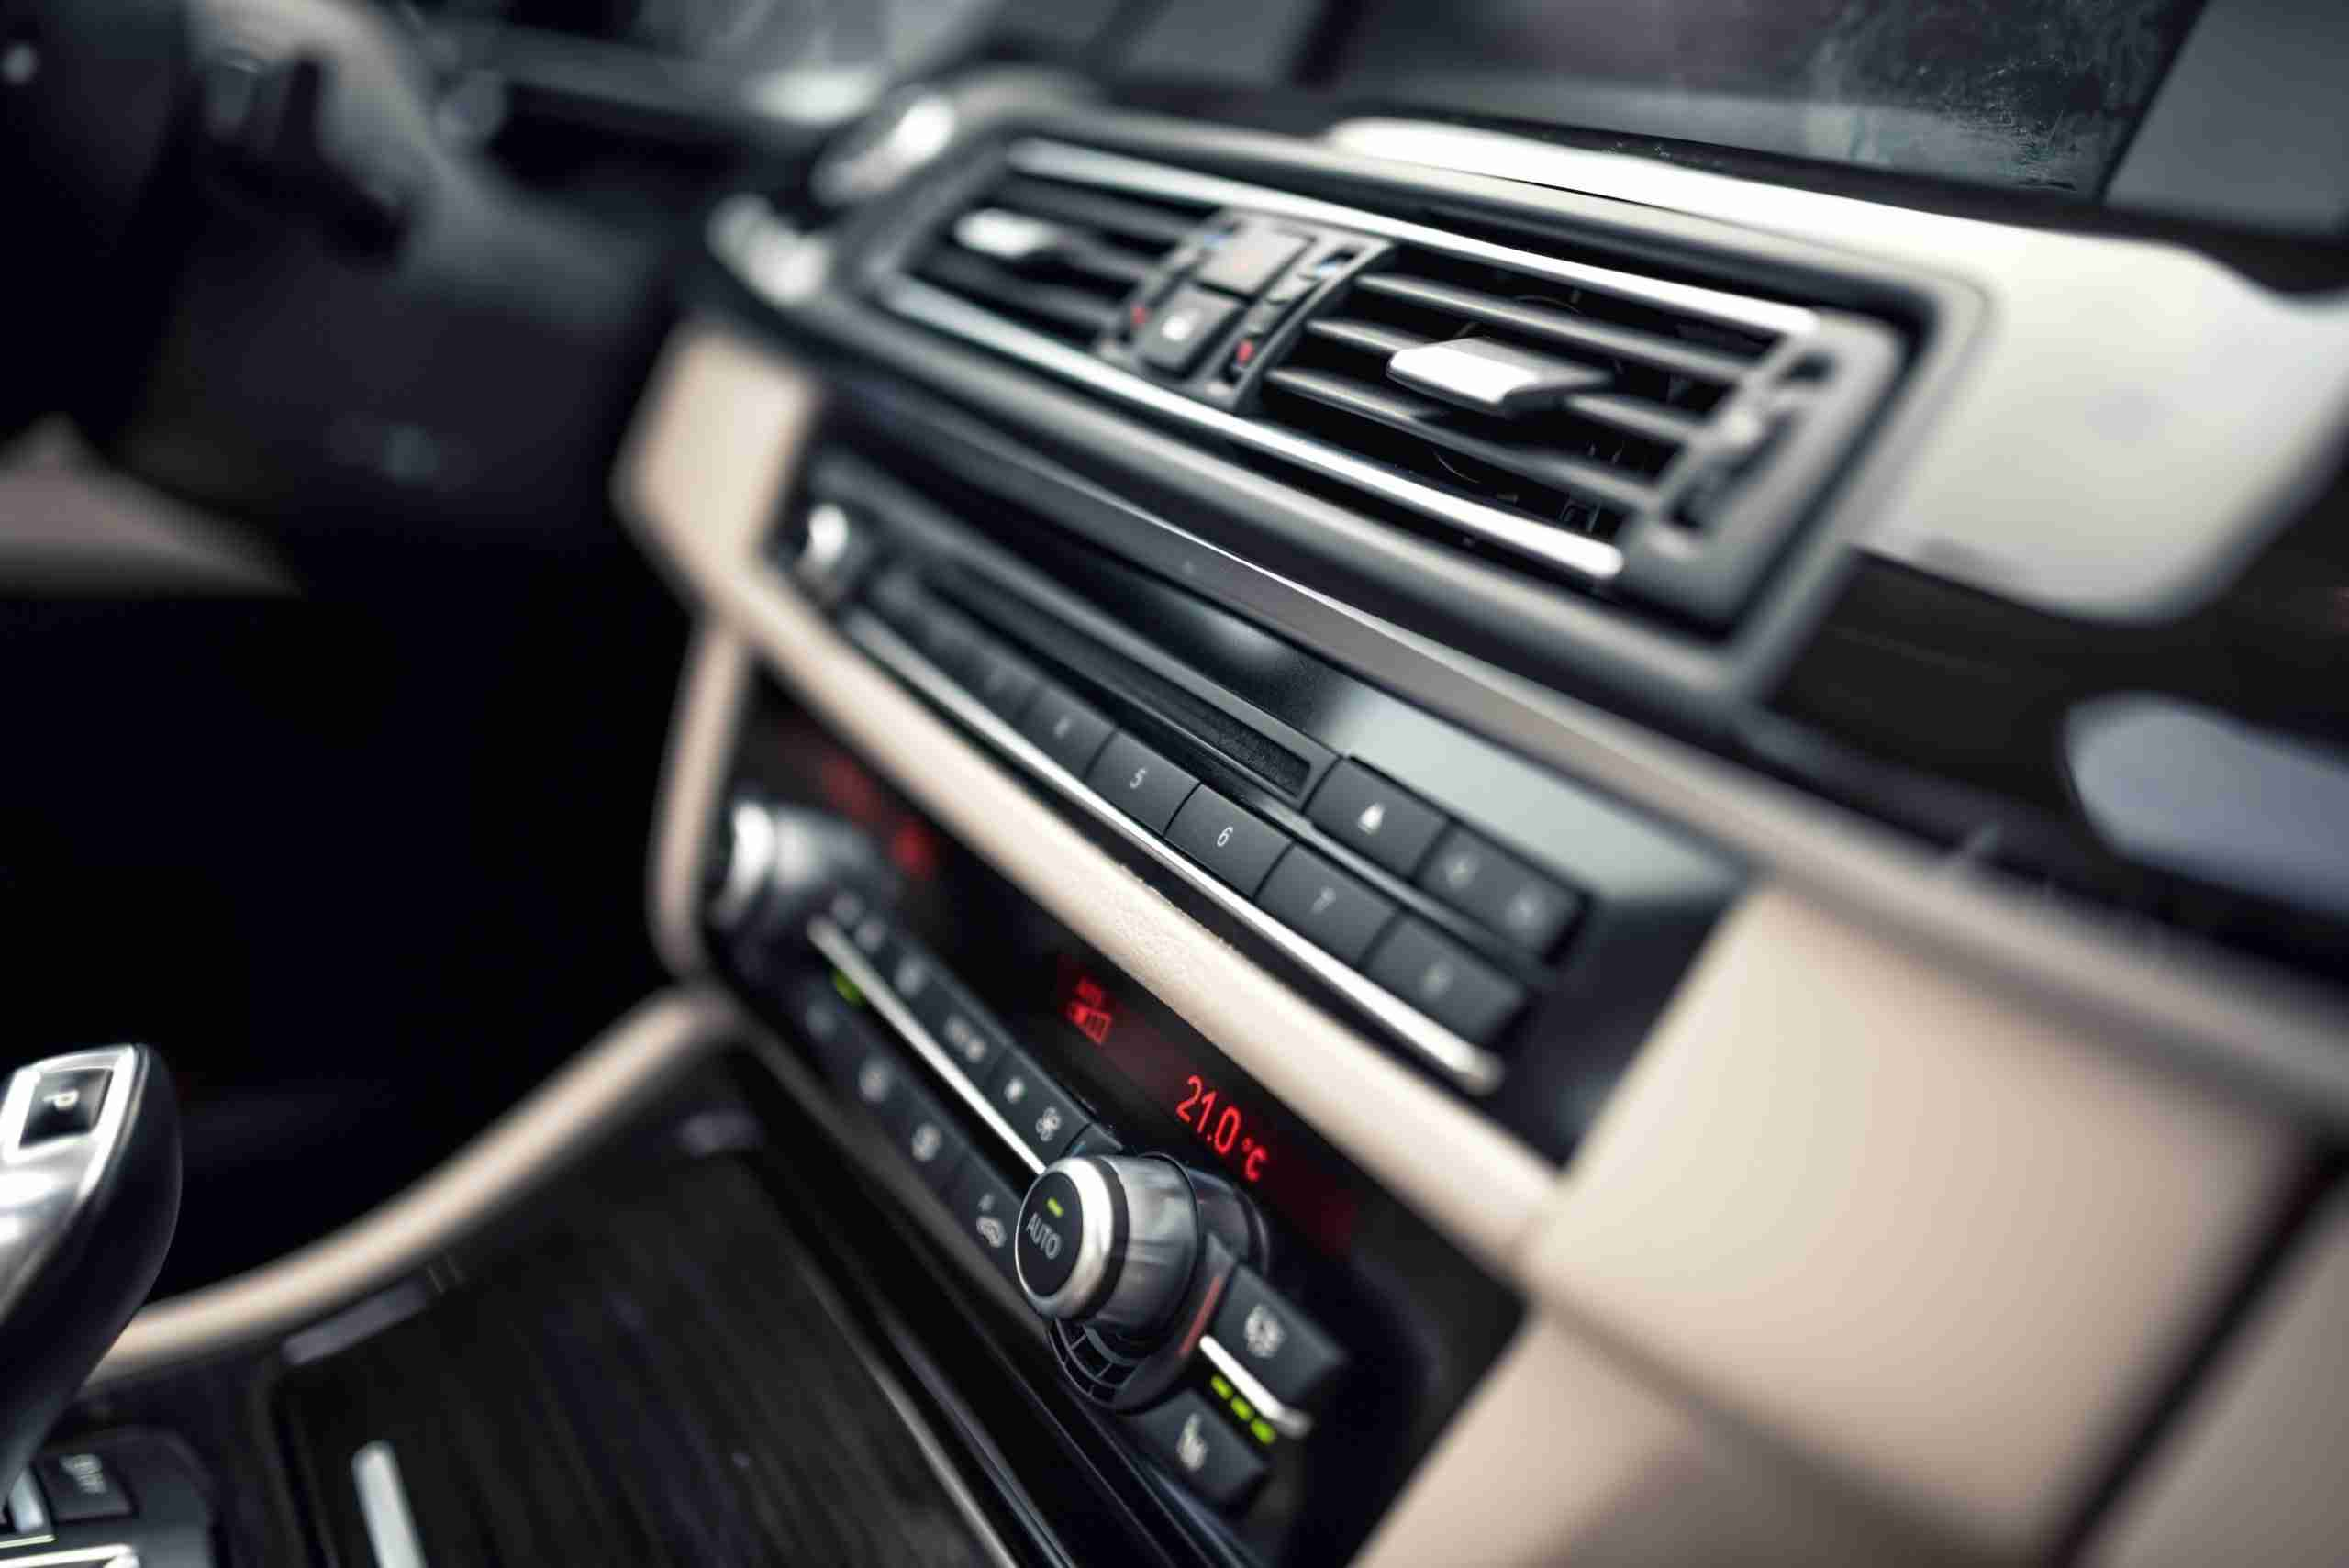 car ventilation system and air conditioning - details and controls of modern car. Concept wallpaper with minimalist industrial design